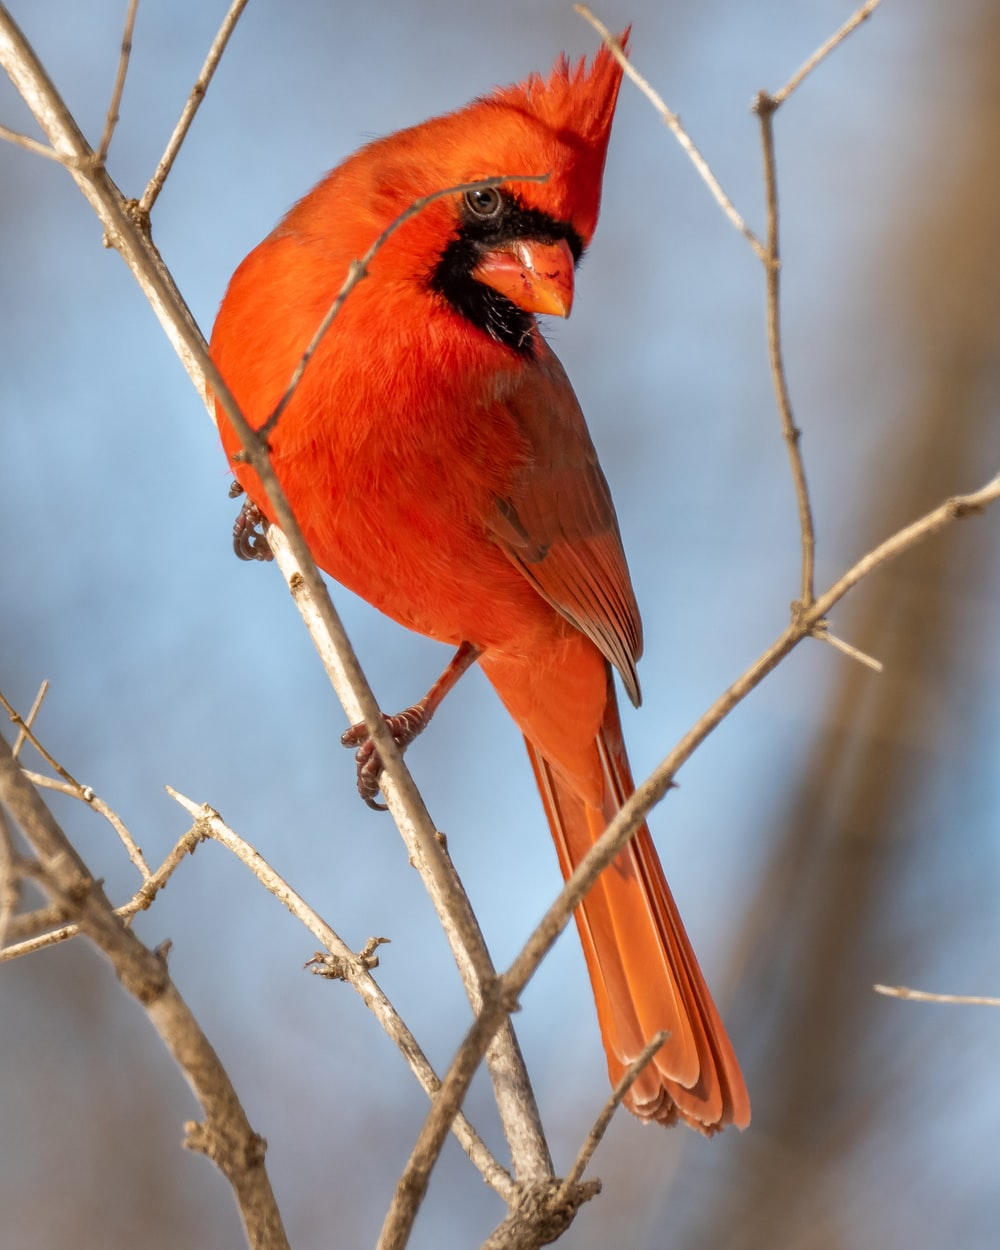 red cardinal perched on brown tree branch during daytime